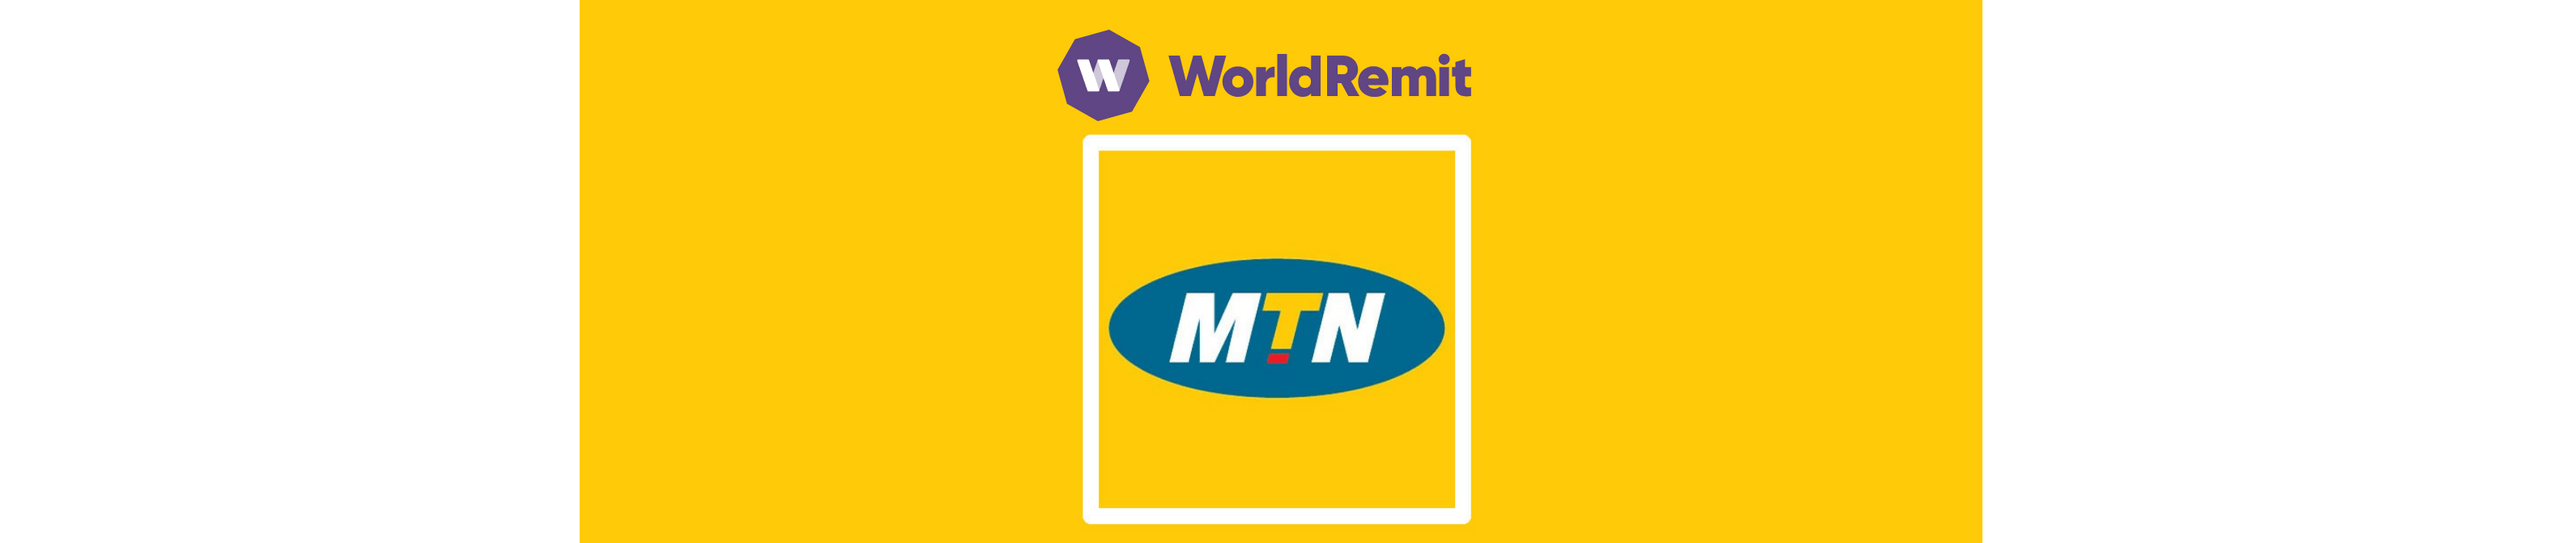 Logos of MTN and WorldRemit on a yellow background